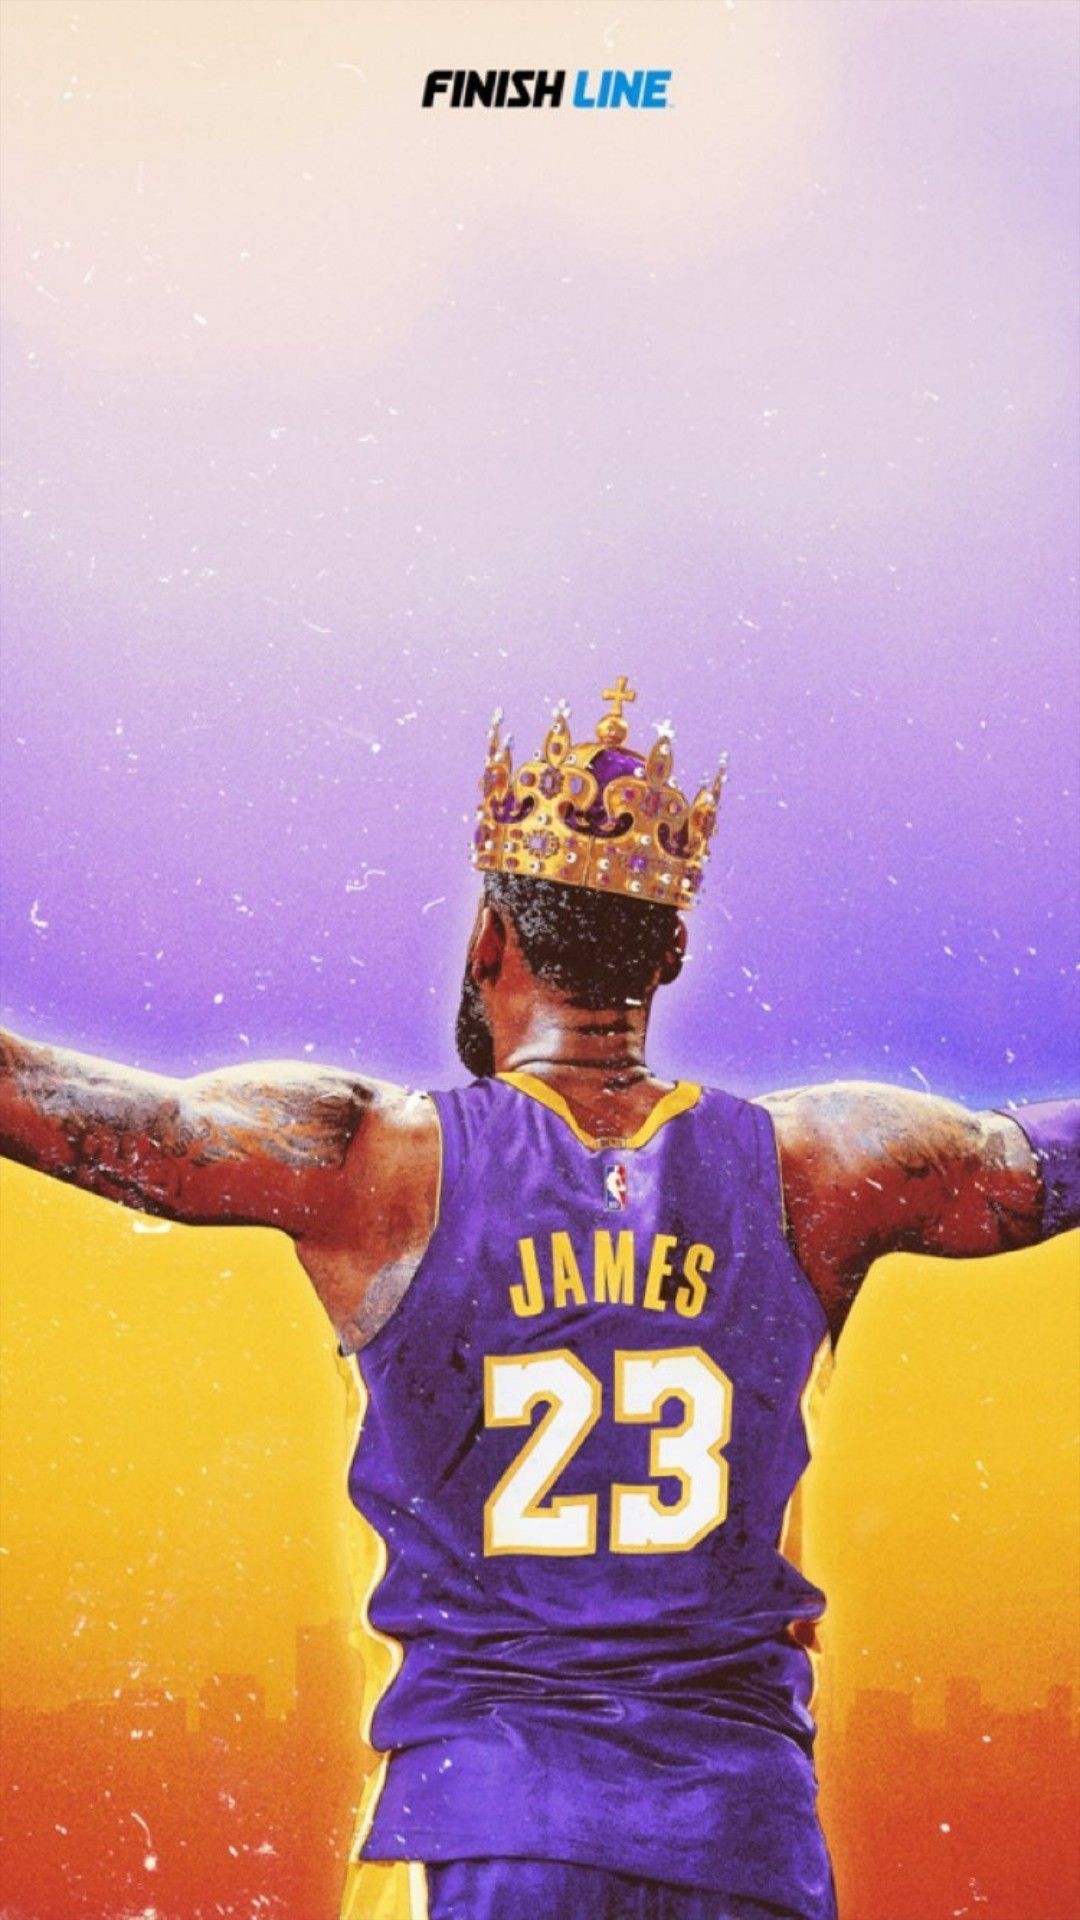 Download Lebron James Wallpaper On High Quality Wallpaper On Hdwallpaper9 Com Iphone Android In 2020 Lebron James Lakers Lebron James Wallpapers Lebron James Poster